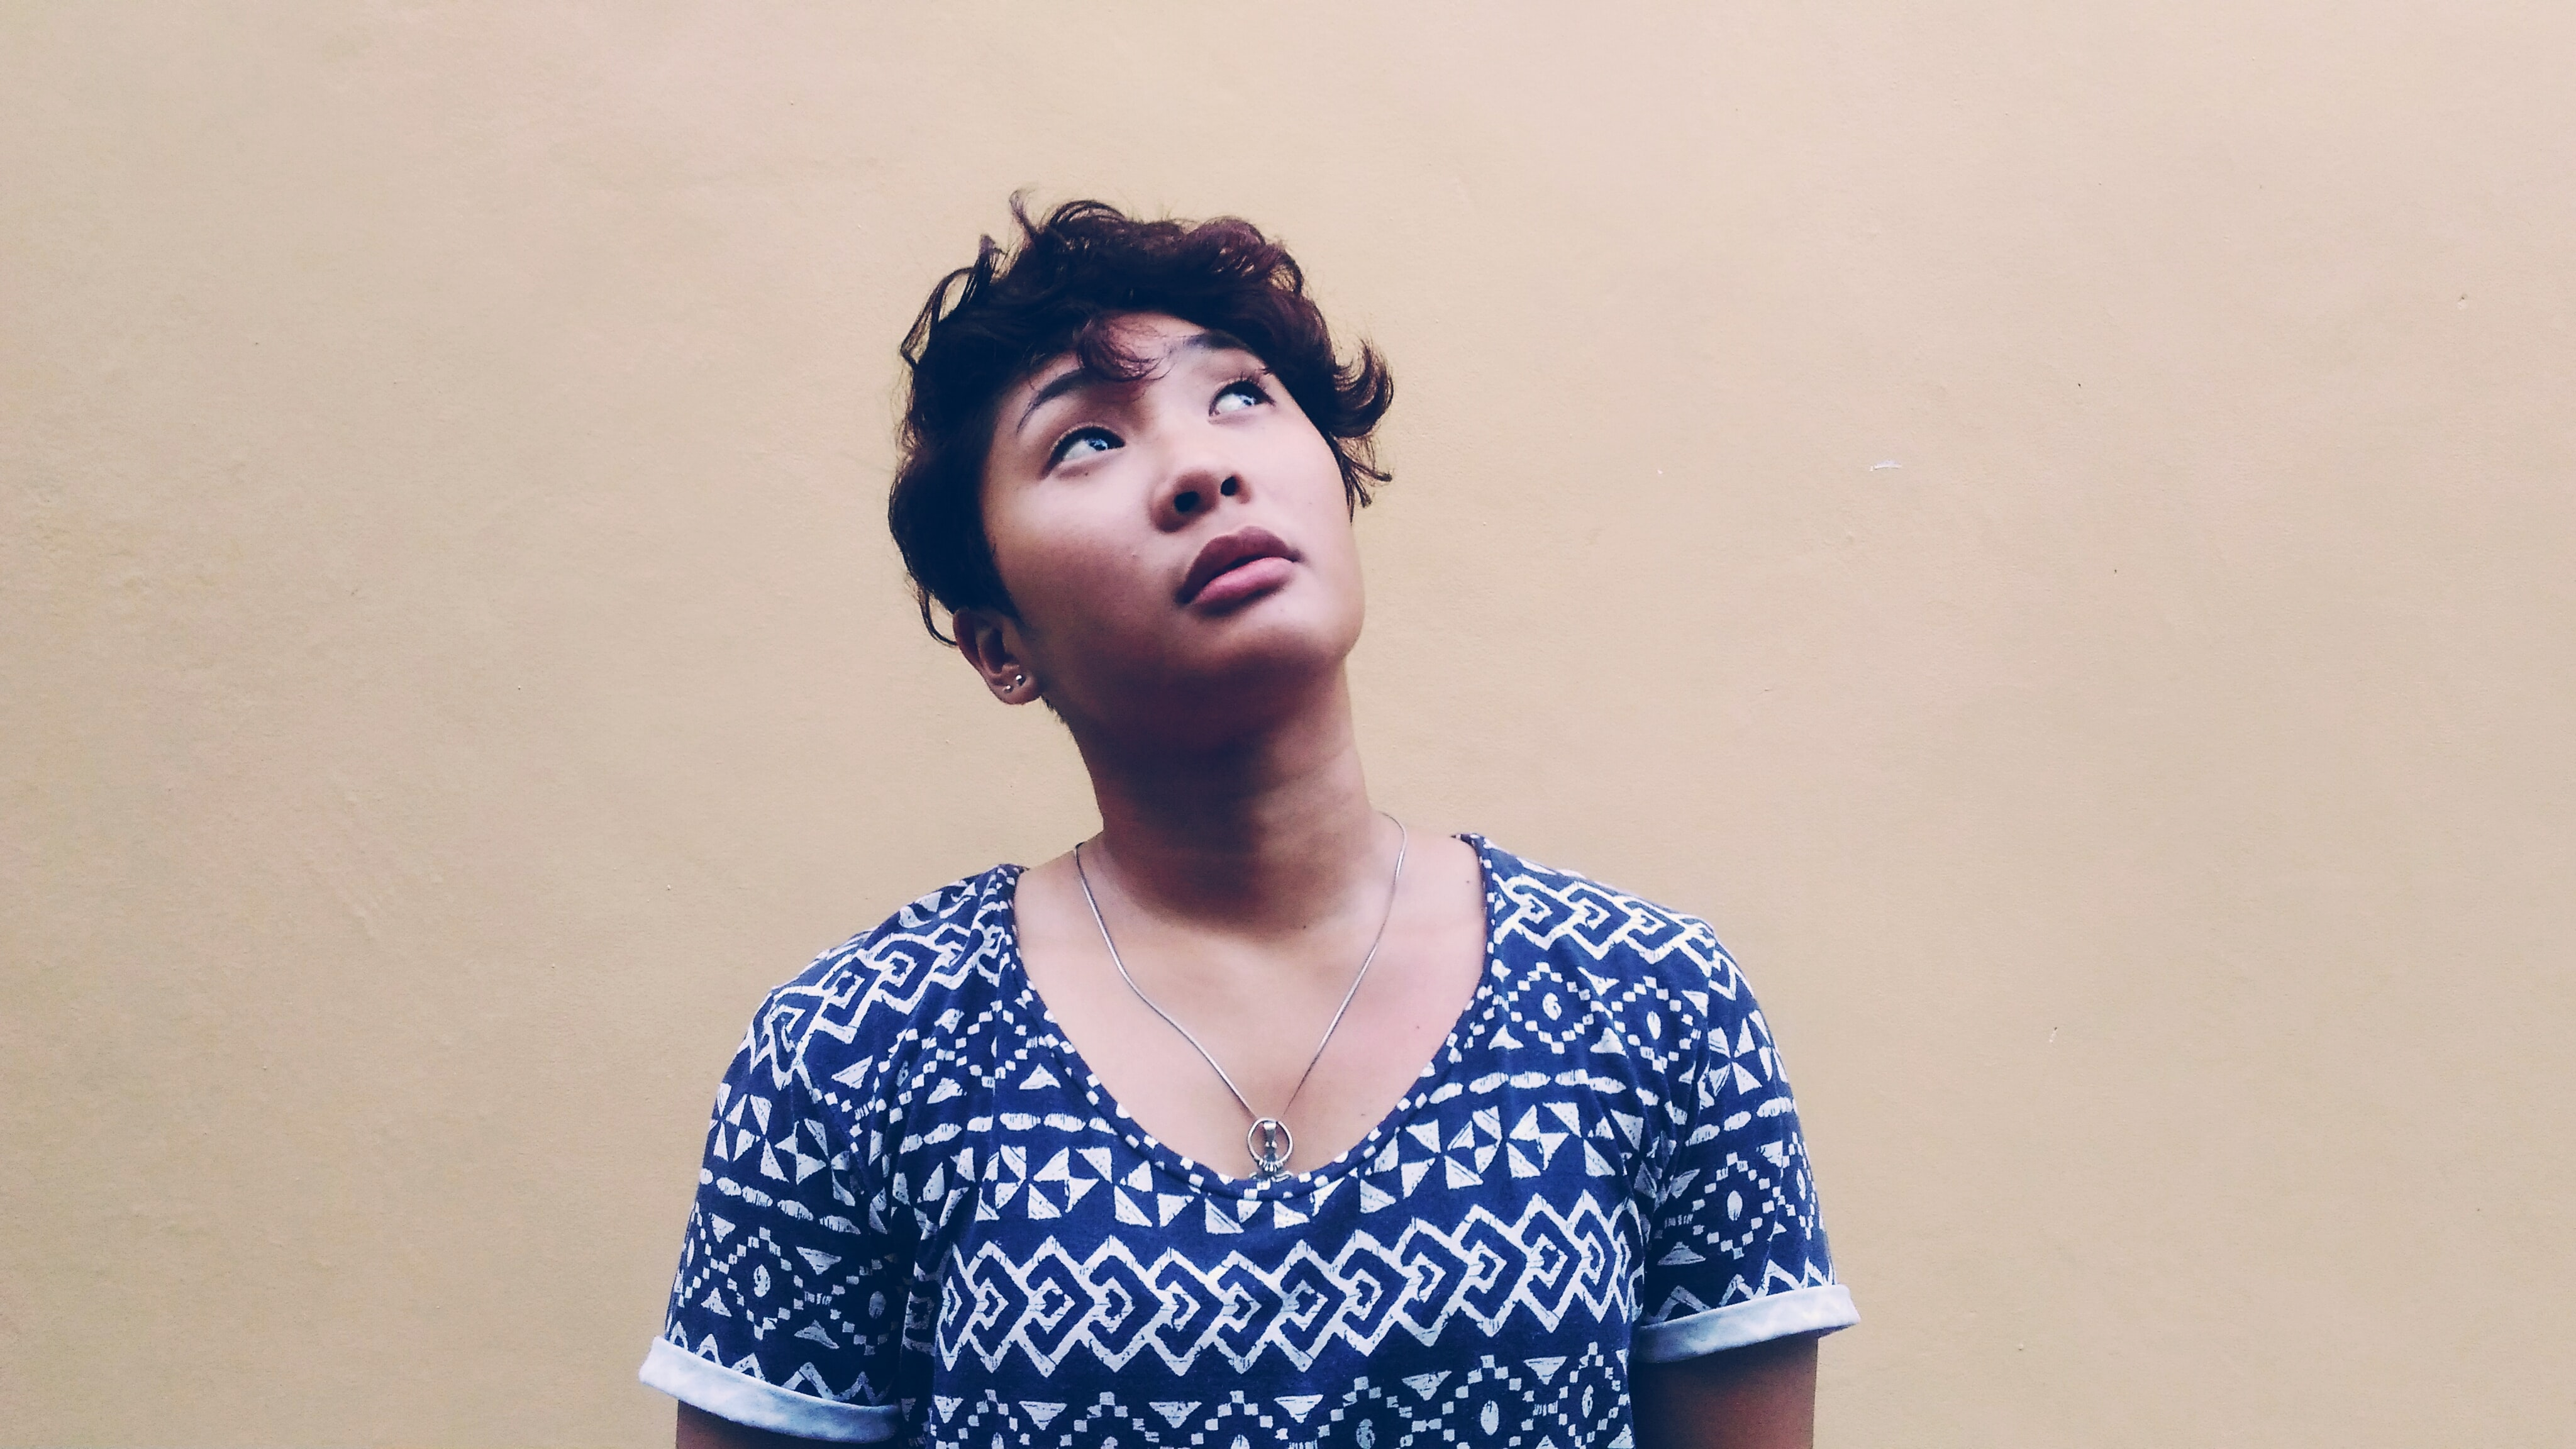 A woman with short hair looks upward in front of a light-colored wall in Bacong